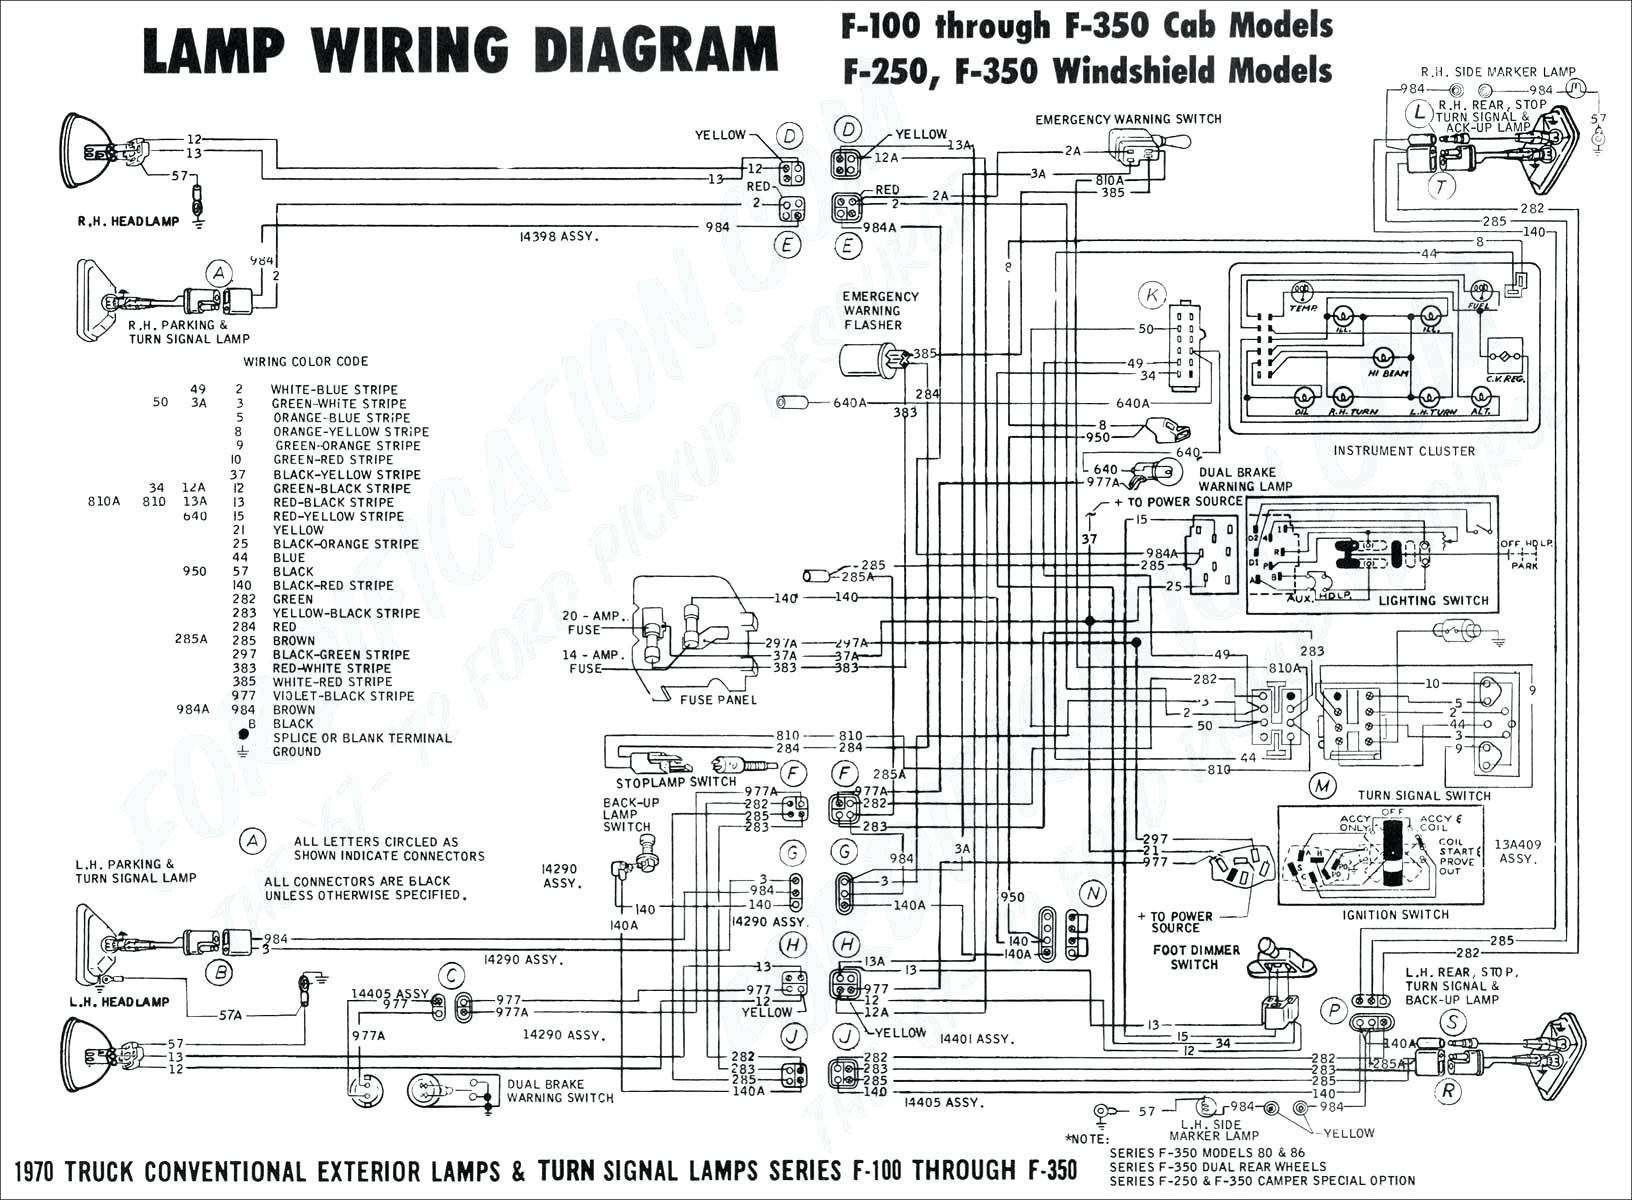 Starter Wiring Diagram 2002 Pt Cruiser Electrical Pin 85 Throttle Body Starting